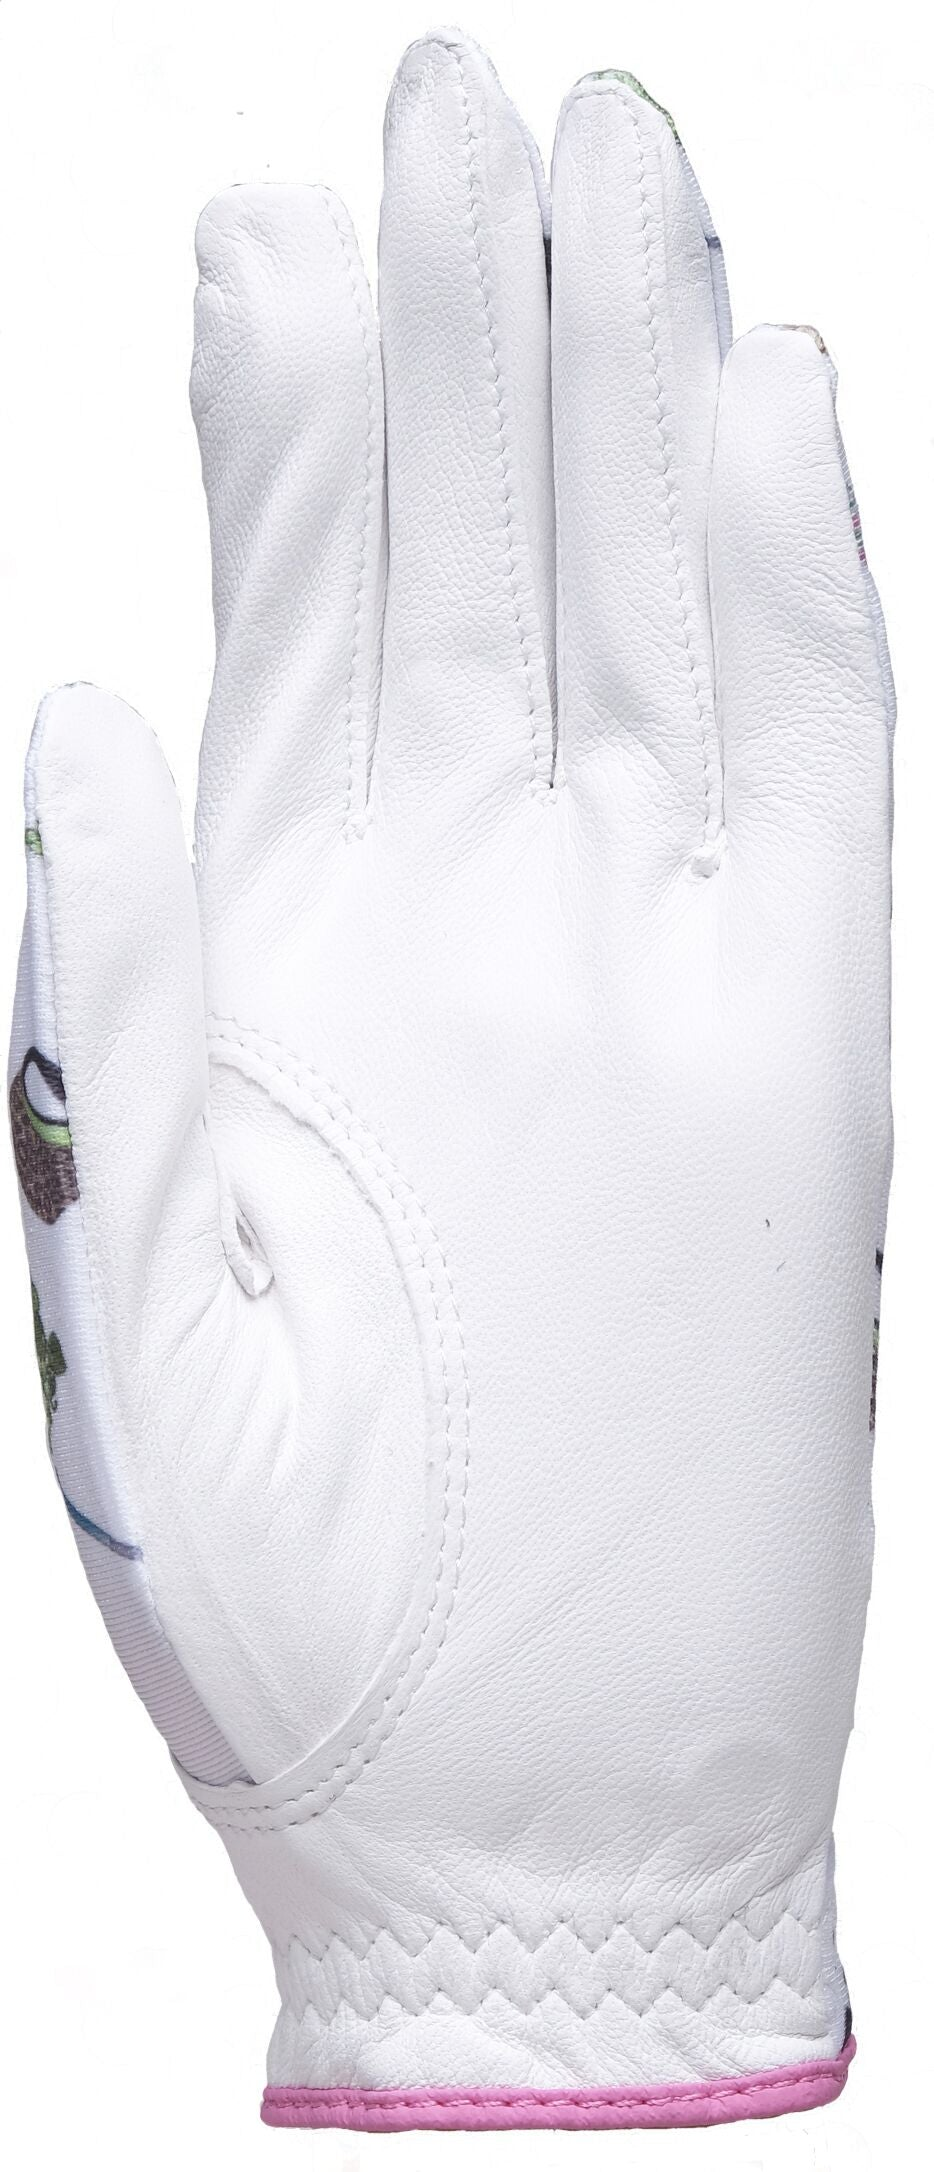 NINE & WINE Women's Golf Glove